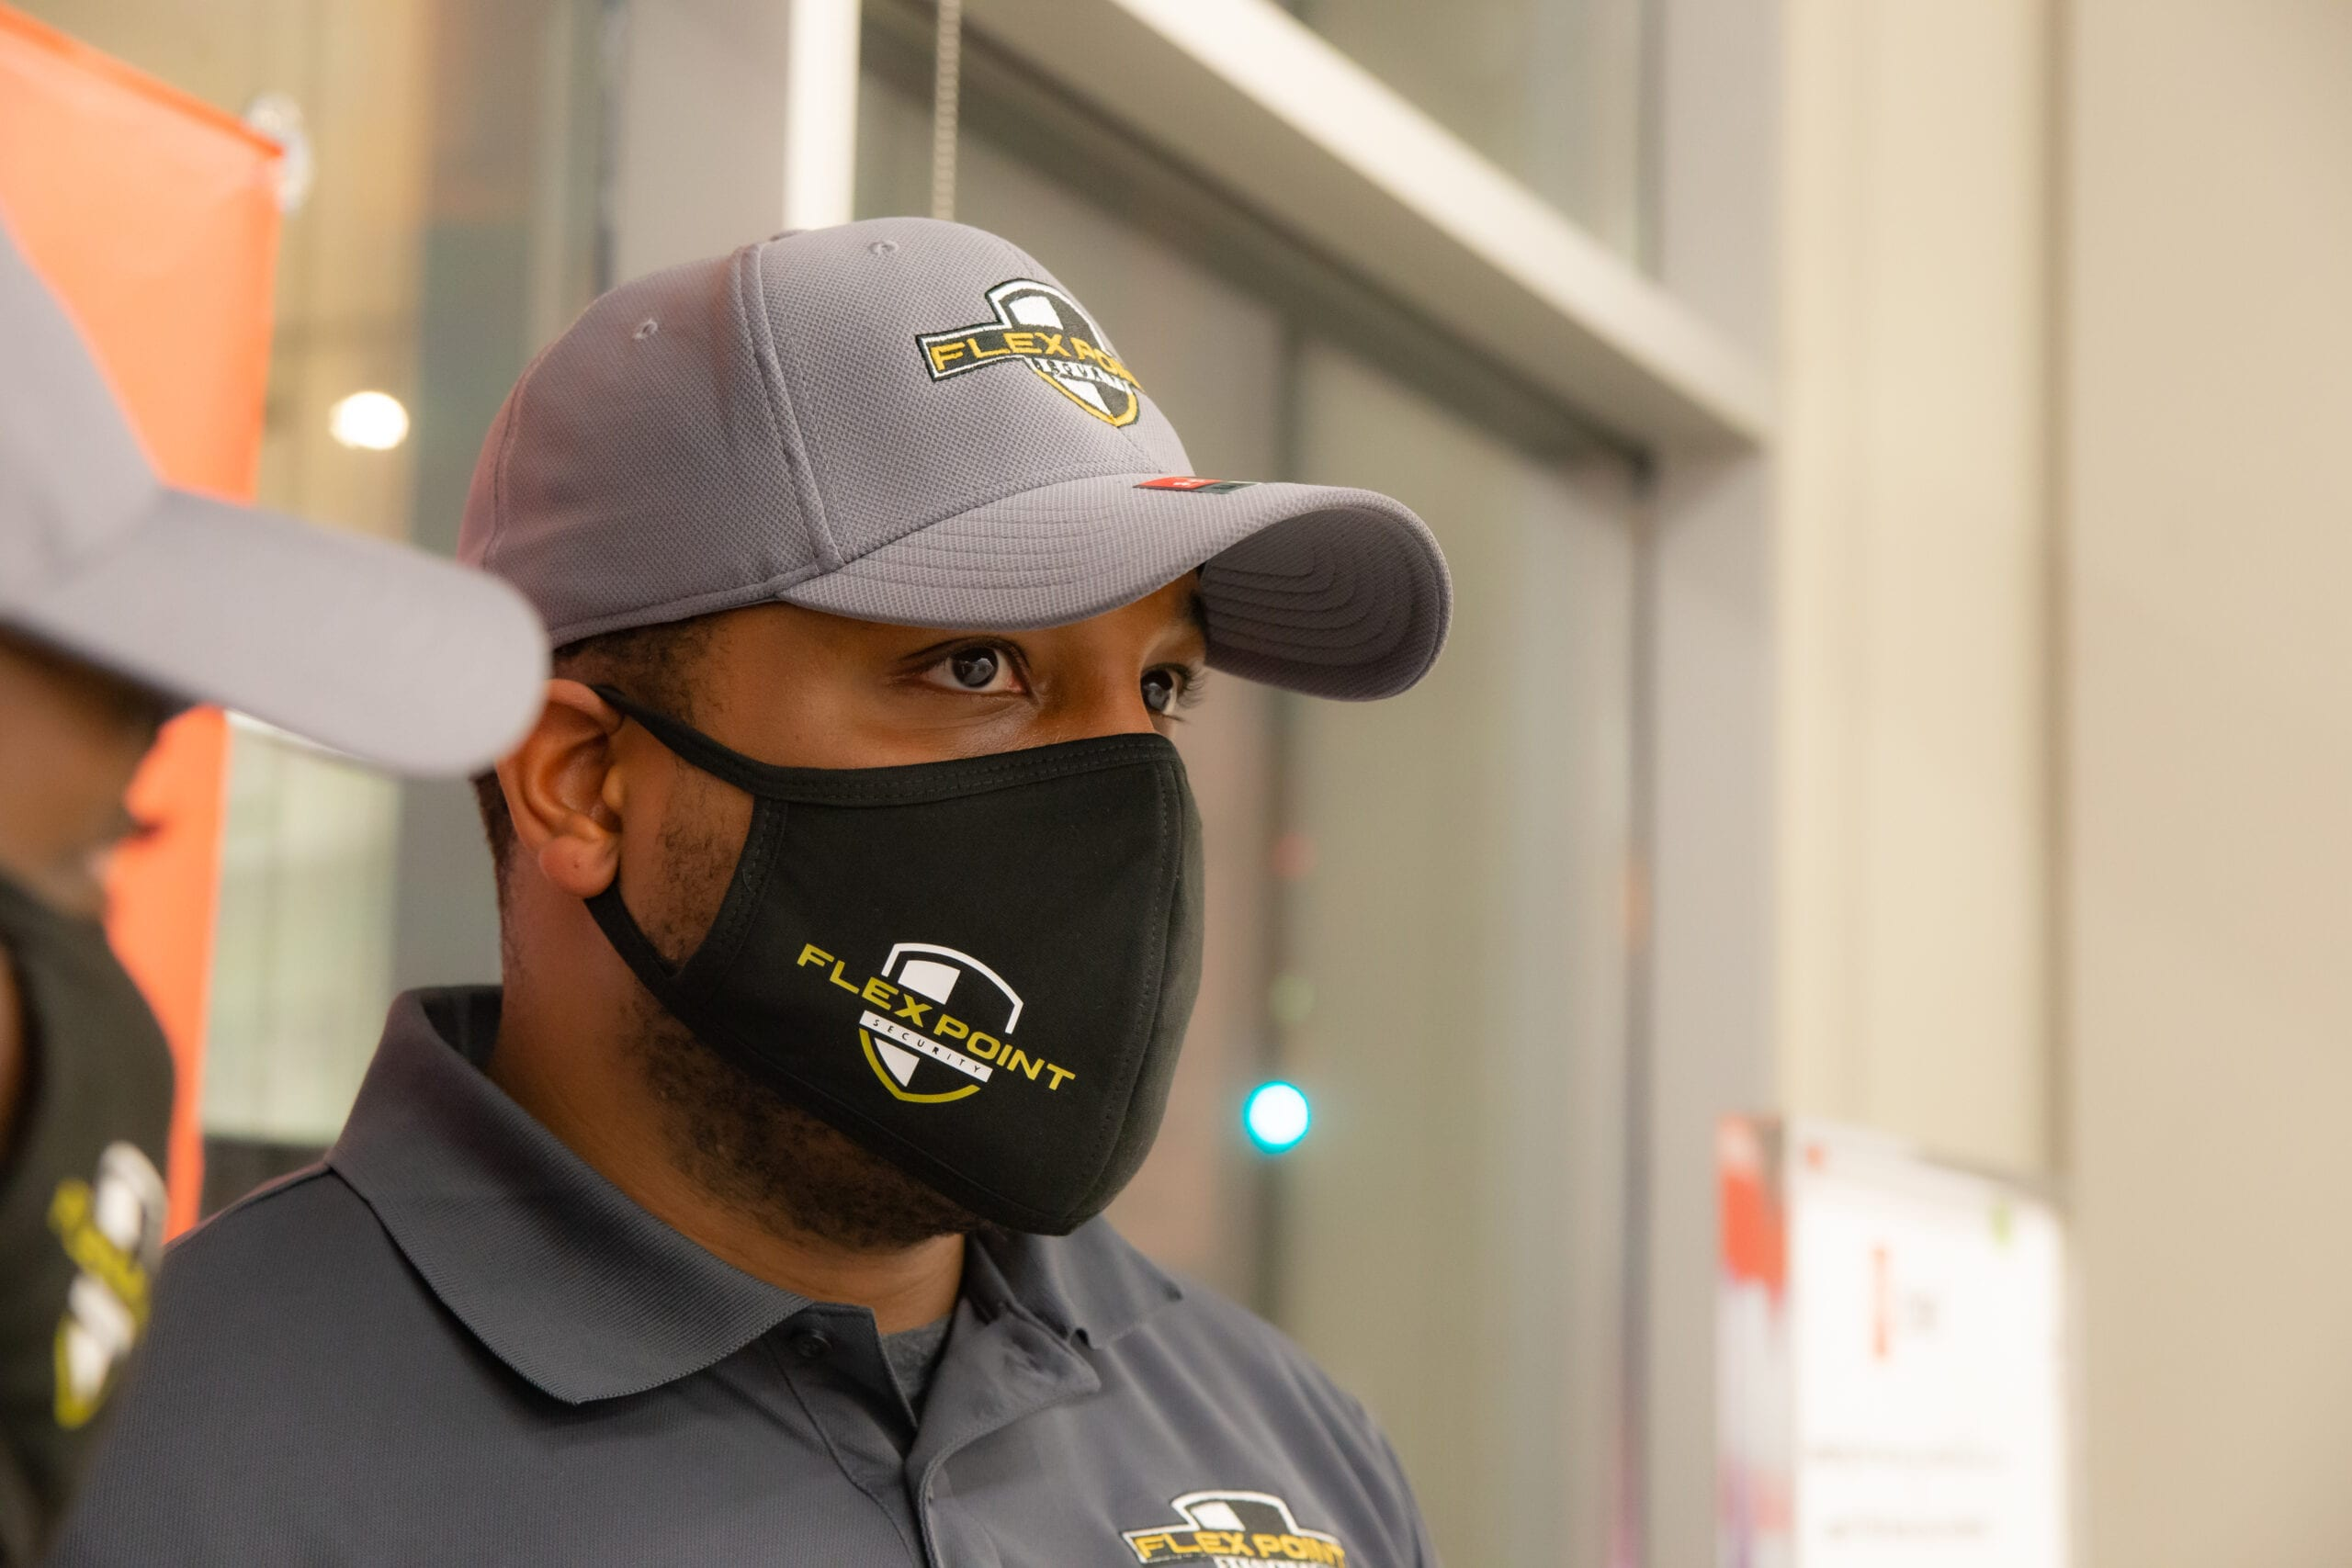 Close up of a Flex Point Security guard providing office building security while wearing a branded face mask, hat, and t-shirt.